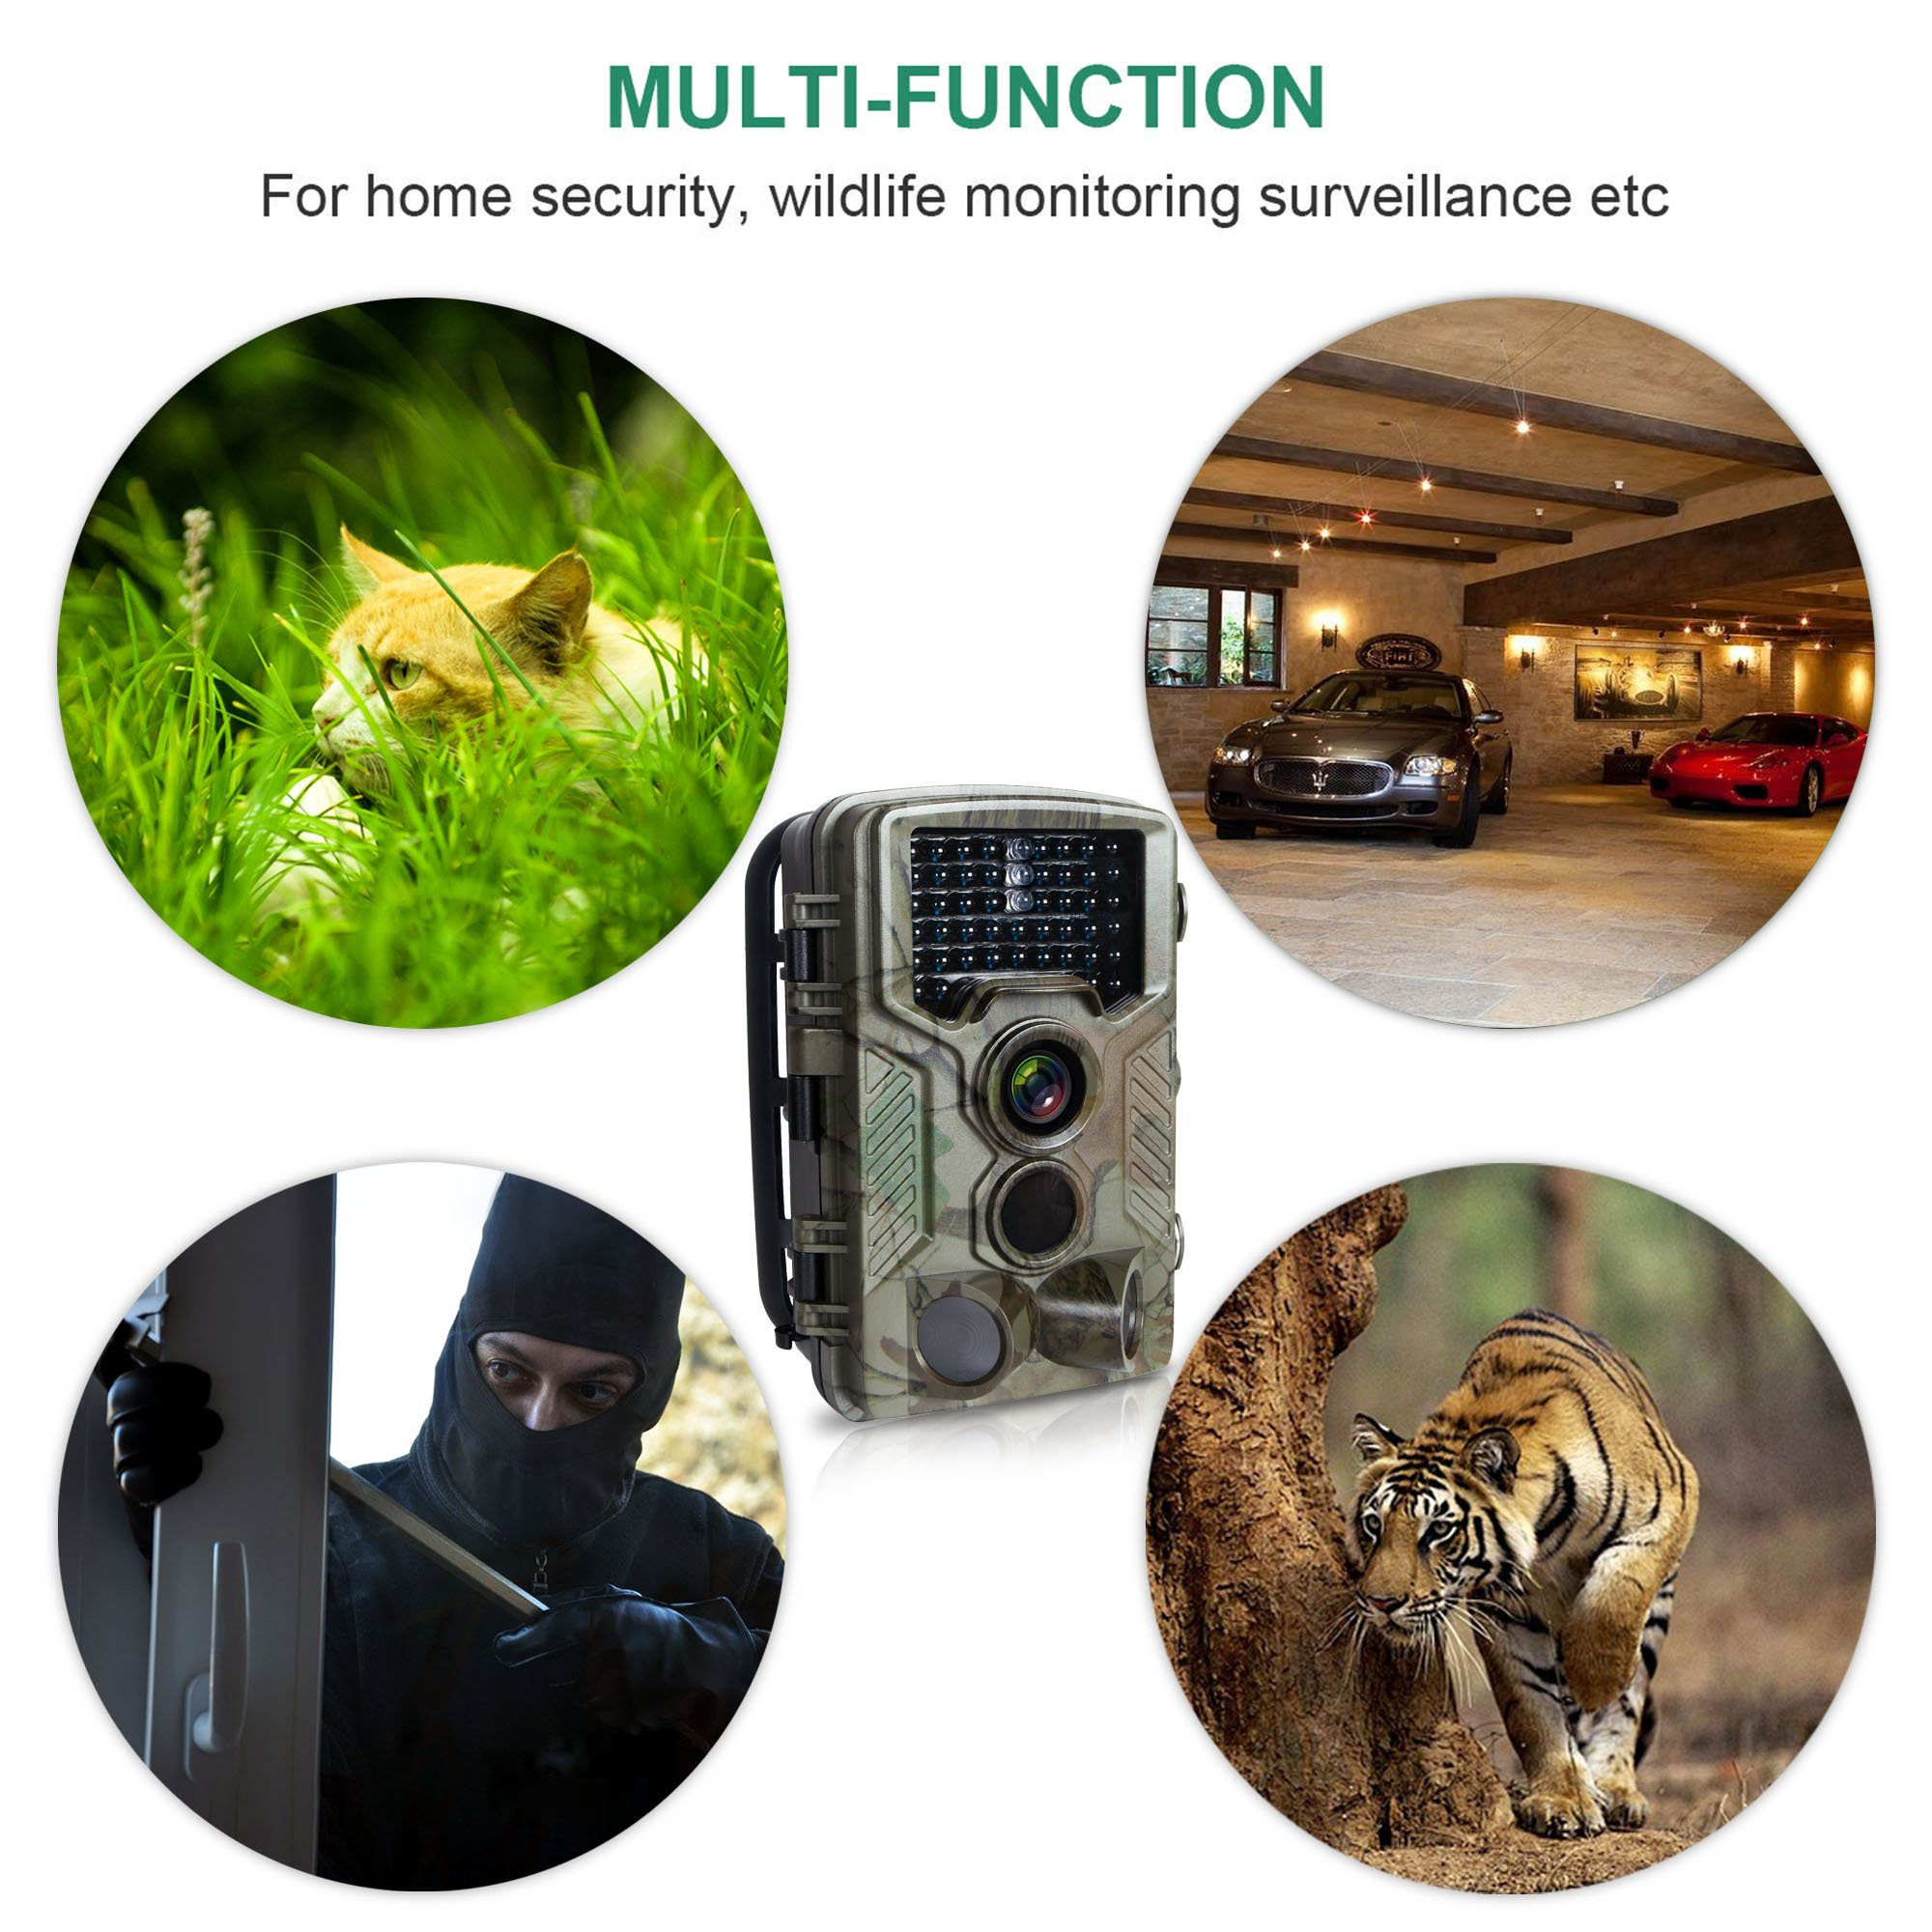 FLAGPOWER Hunting Trail Camera, 16MP 1080P 0.2s Trigger Time Wildlife Game Camera with 2.4'' LCD 850nm Upgrading IR LEDs Night Vision up to 75ft/2.3m IP56 Spray Water Protected Design by FLAGPOWER (Image #7)